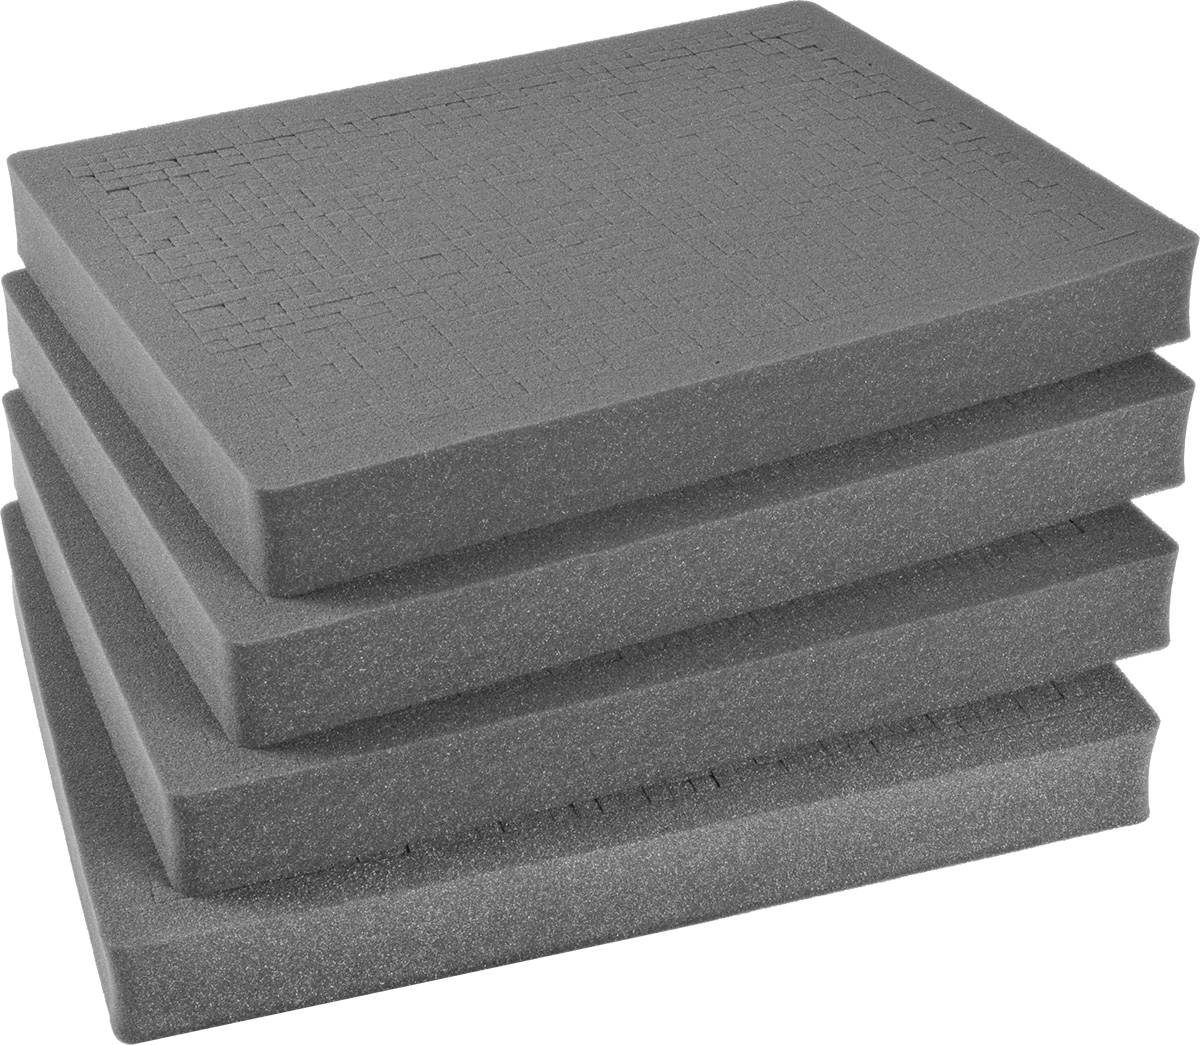 PELICAN™ Replacement Foam #1620 (4pcs Set)